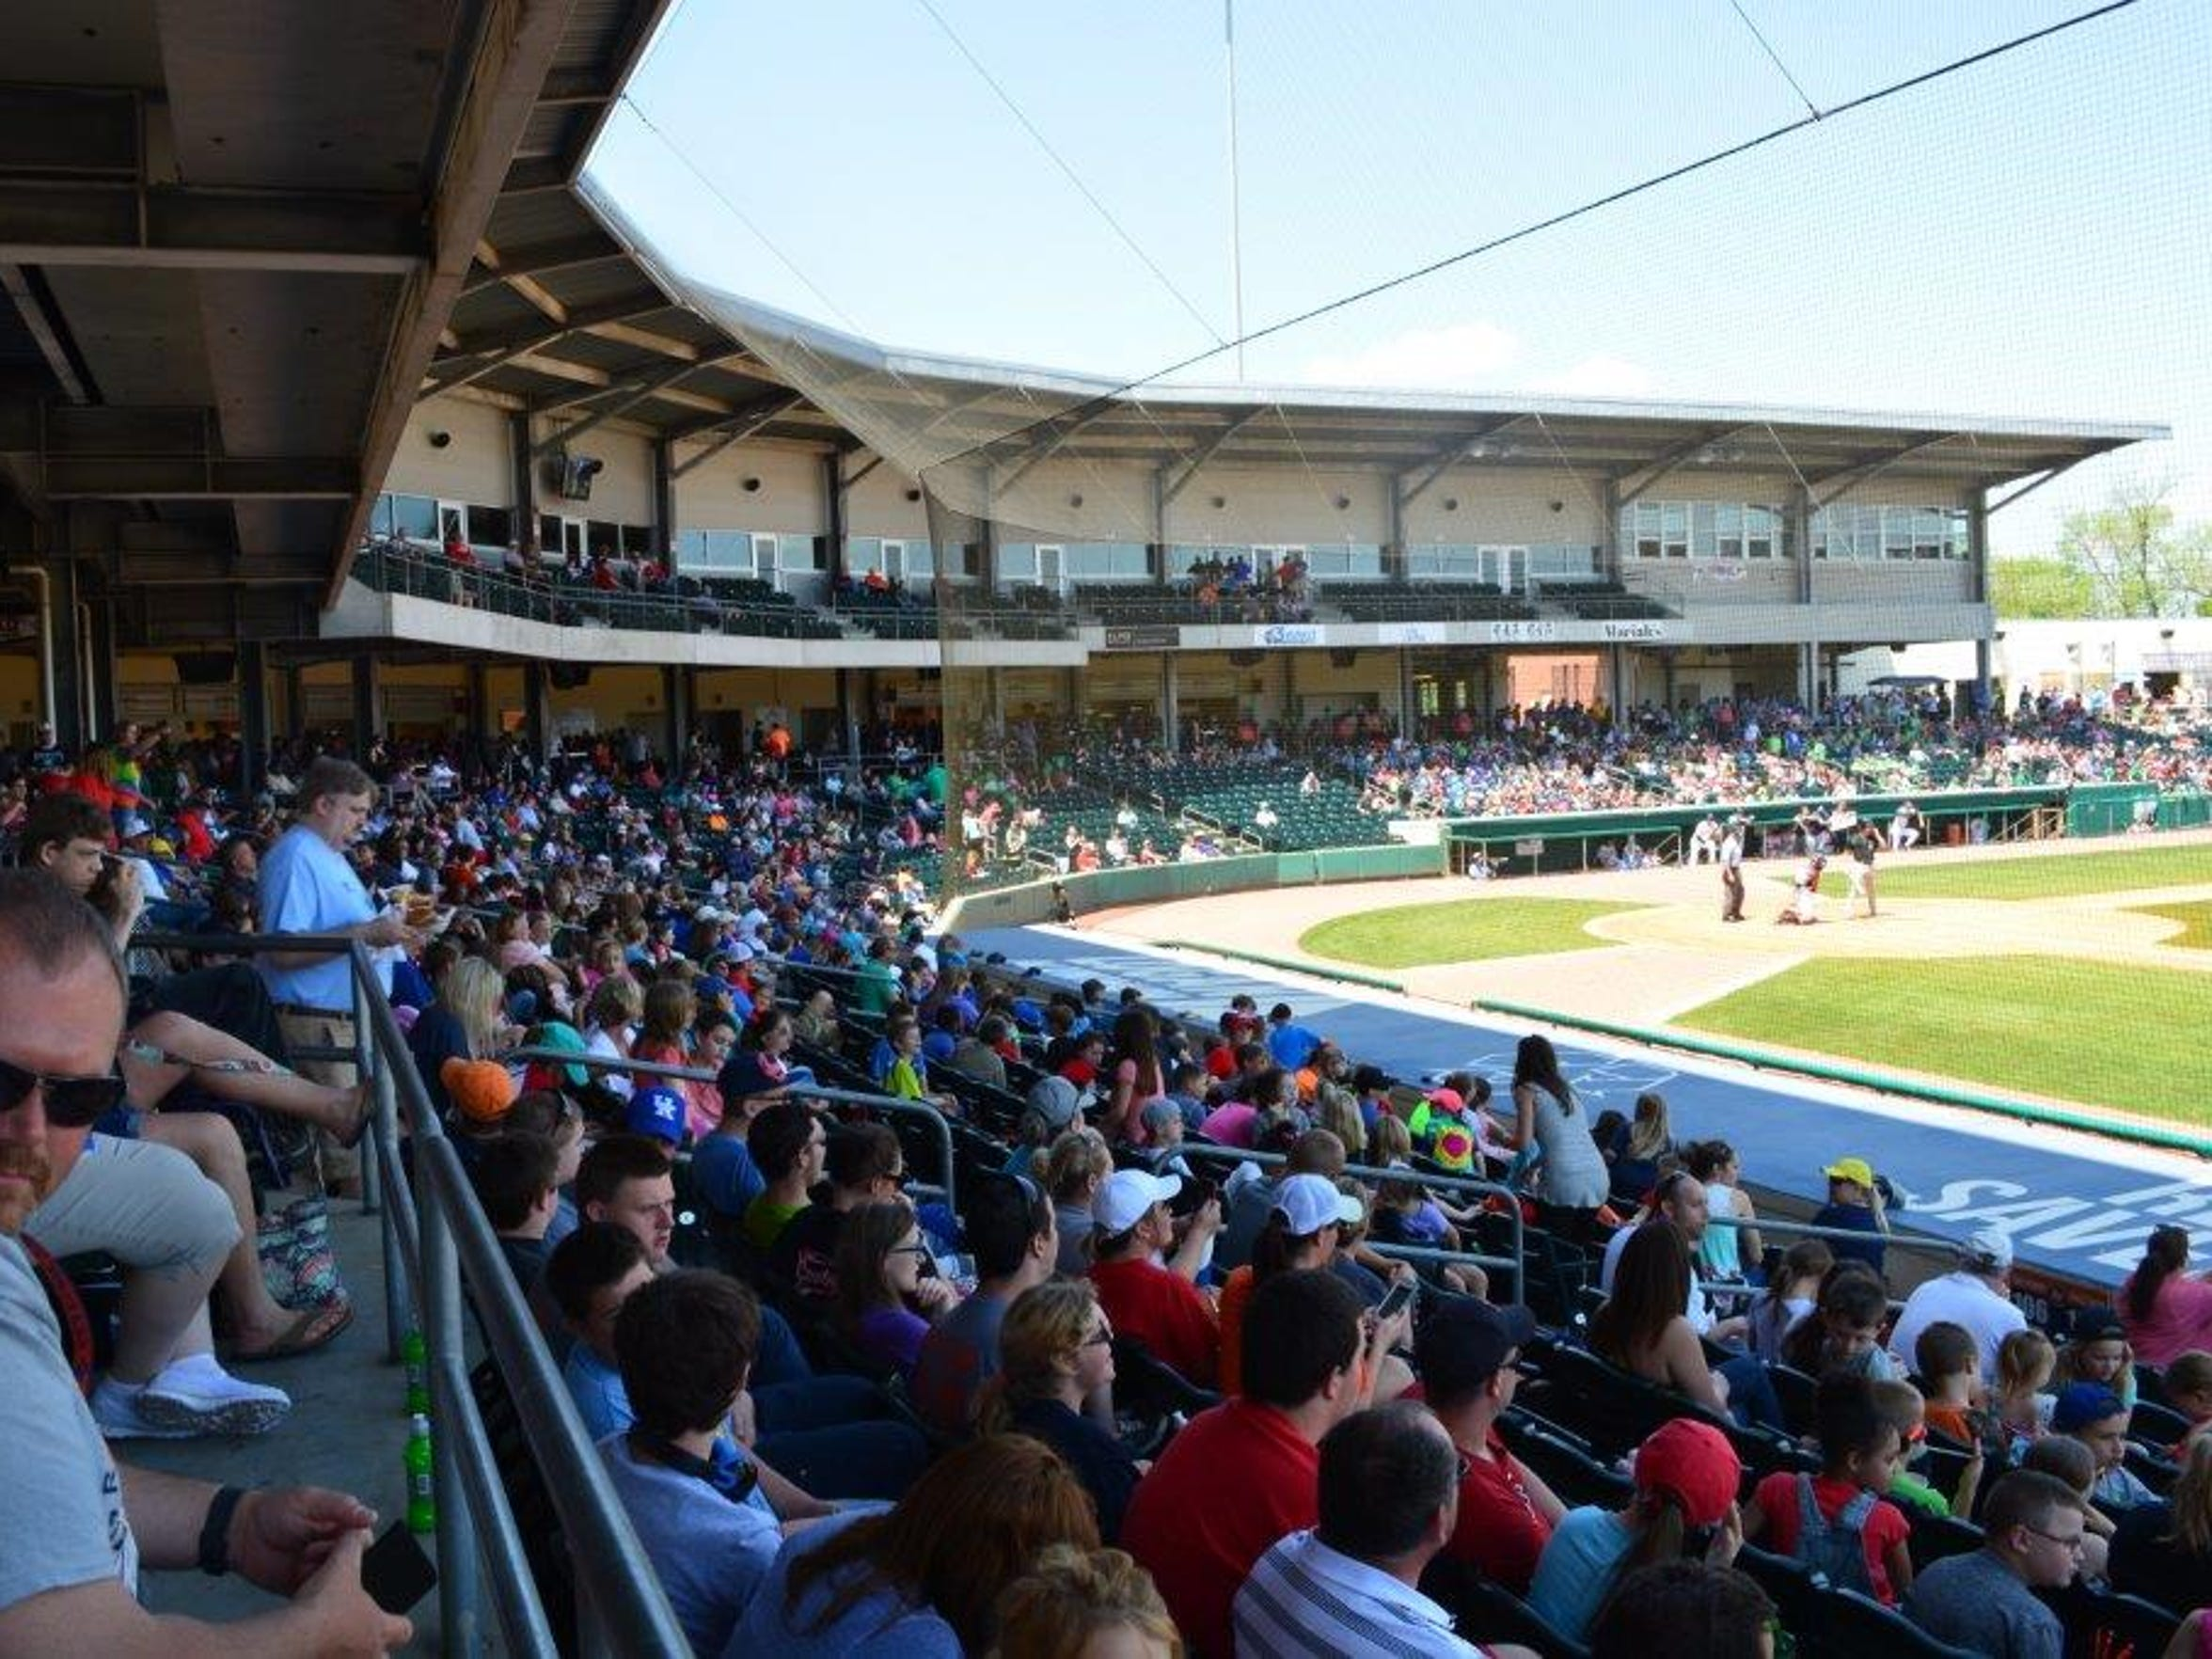 Fans pack Bowling Green Ballpark during an April 26 game between the Bowling Green Hot Rods and Dayton Dragons. The Hot Rods became the team that was initially supposed to come to Evansville in 2004.